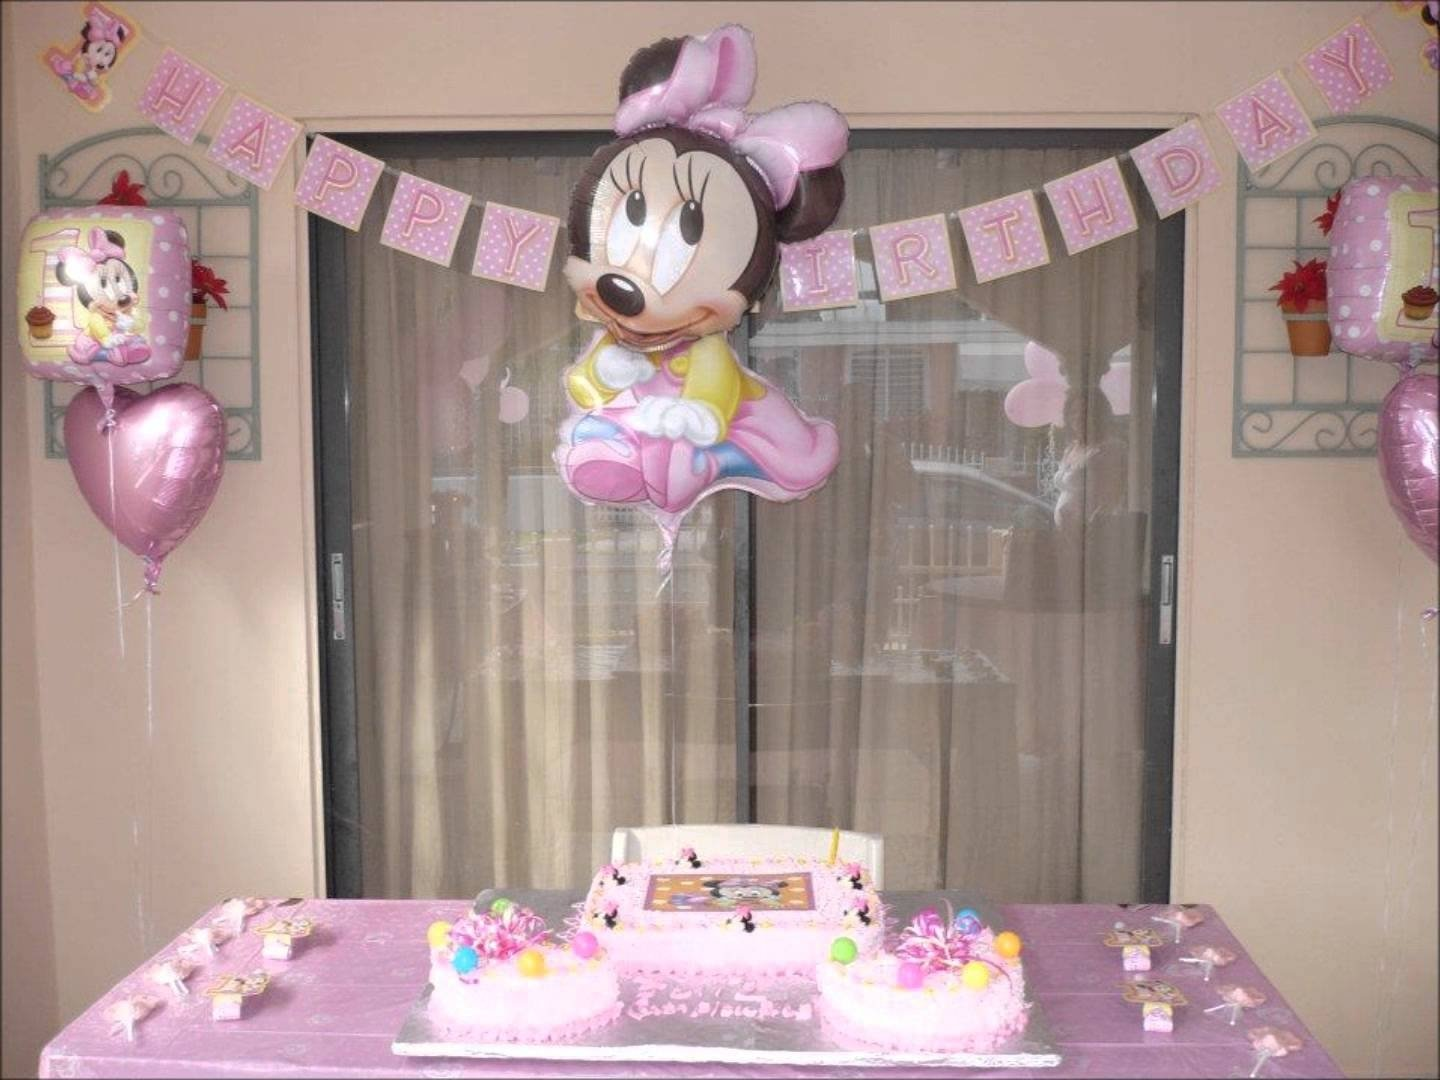 10 Perfect Baby Minnie Mouse Birthday Party Ideas minnie mouse birthday decoration youtube 1